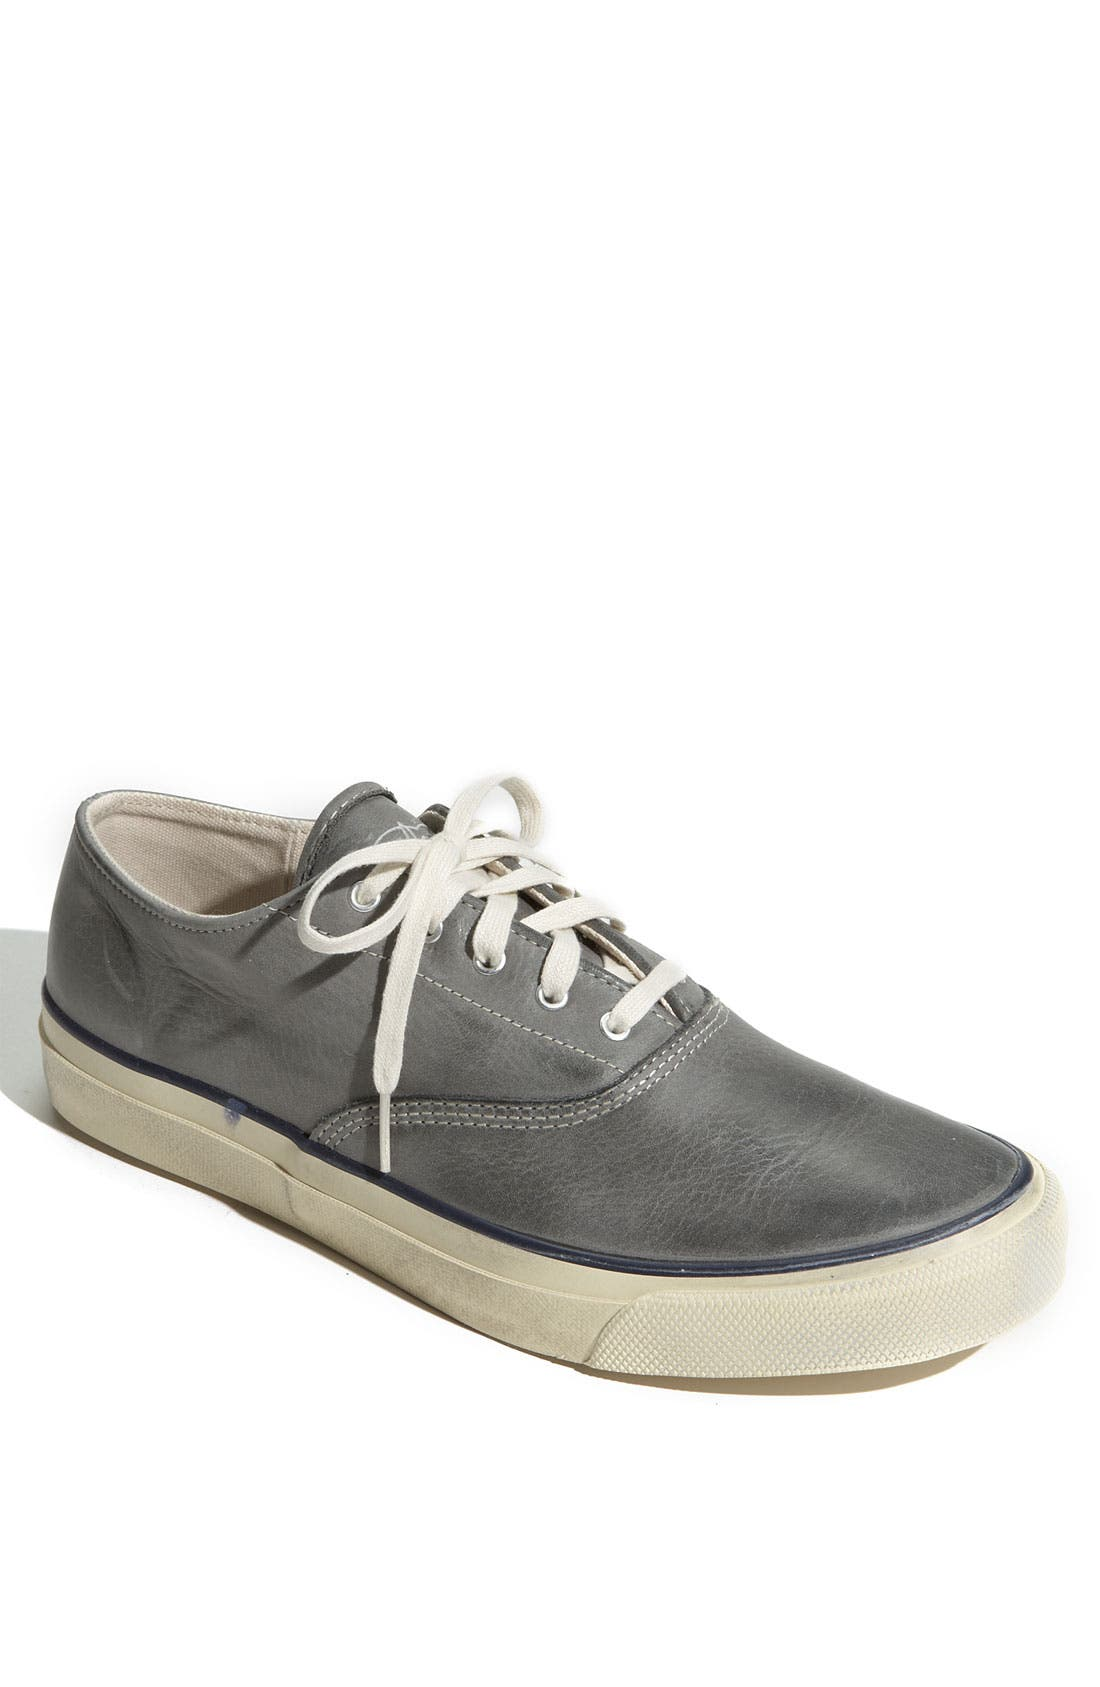 Alternate Image 1 Selected - Sperry Top-Sider® 'CVO' Burnished Sneaker